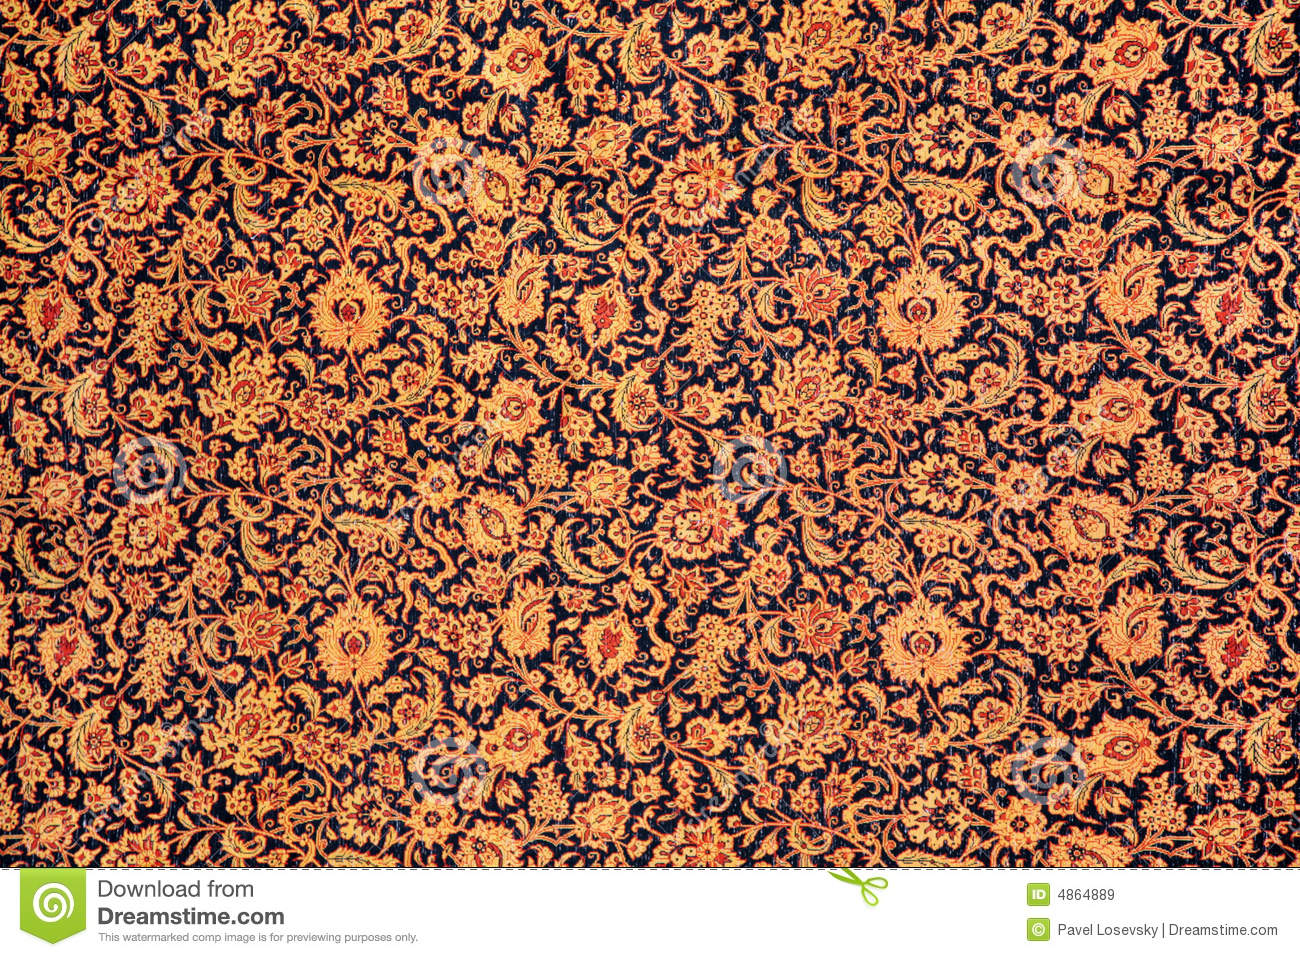 Carpet with floral ornament